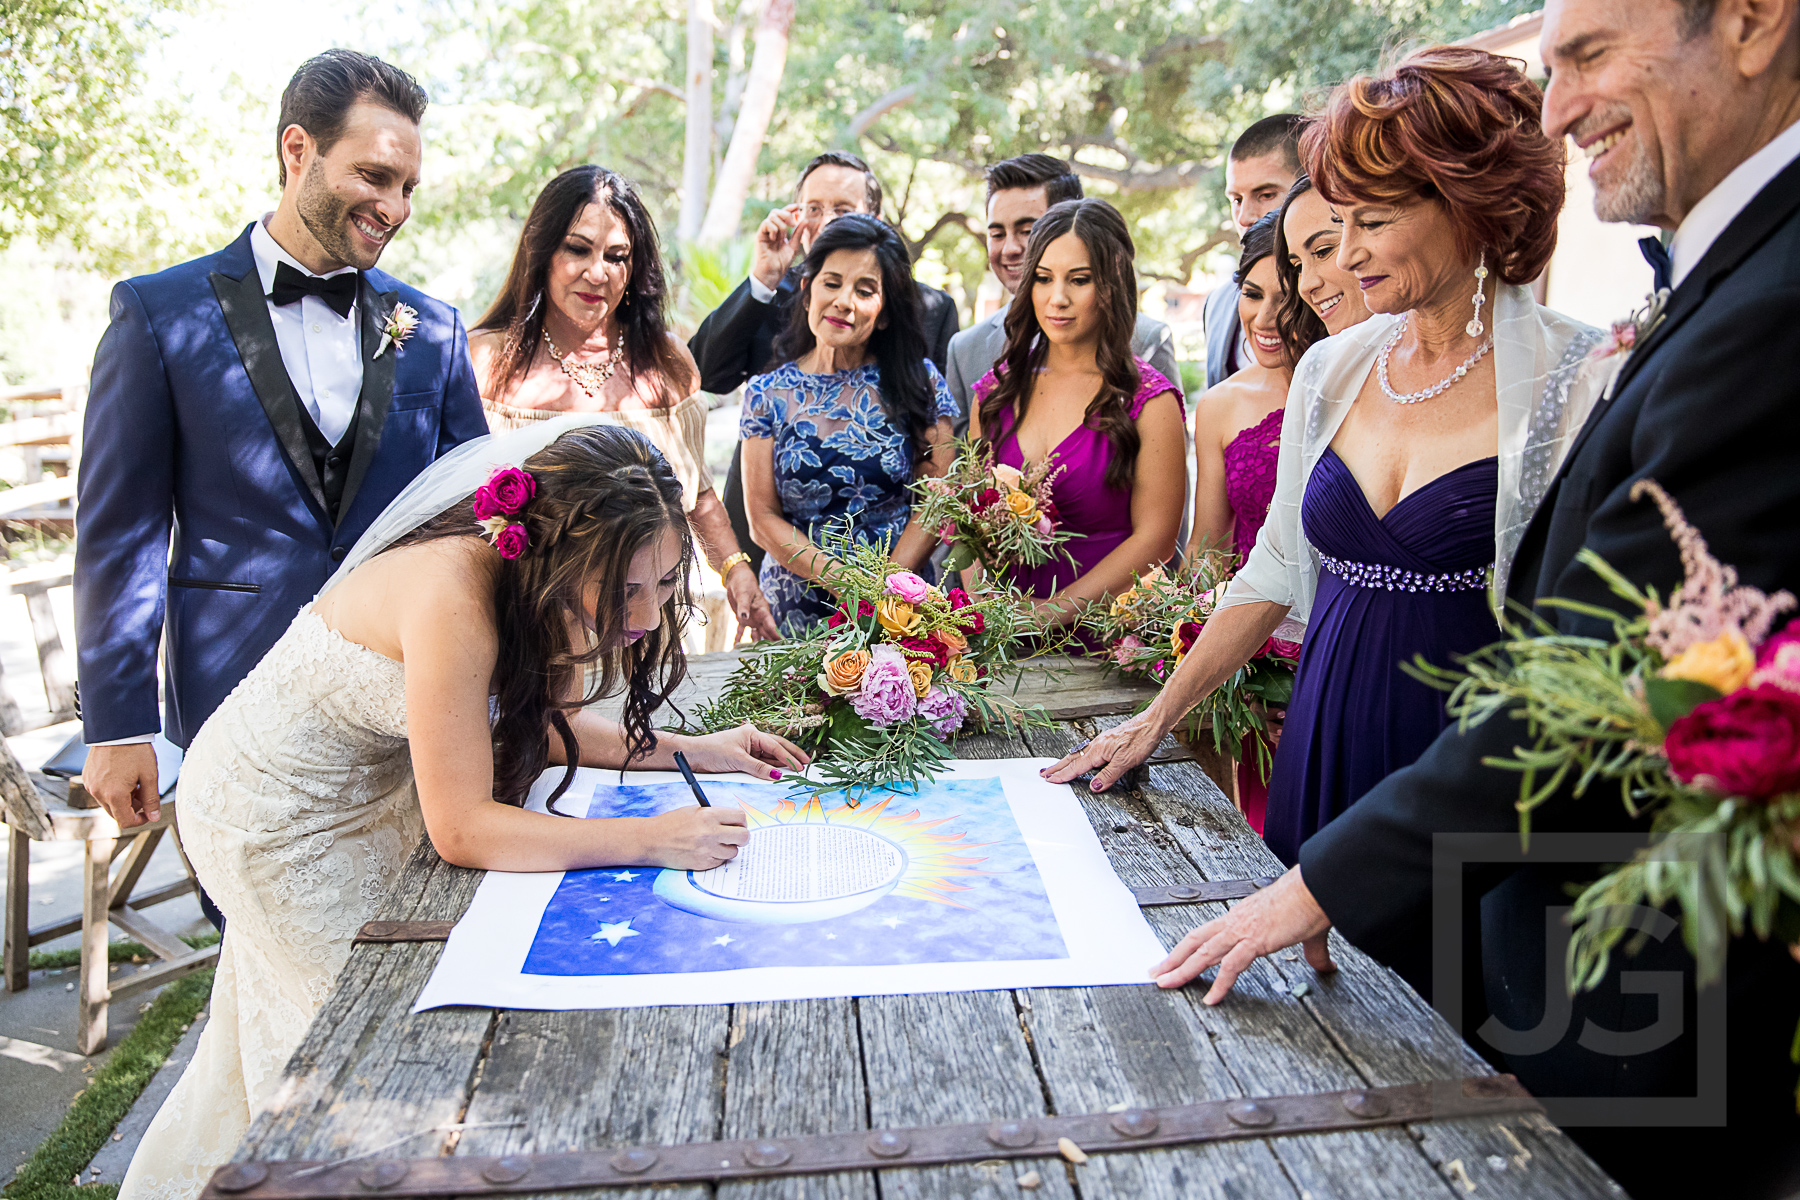 Oak Canyon Ranch Ketubah Signing